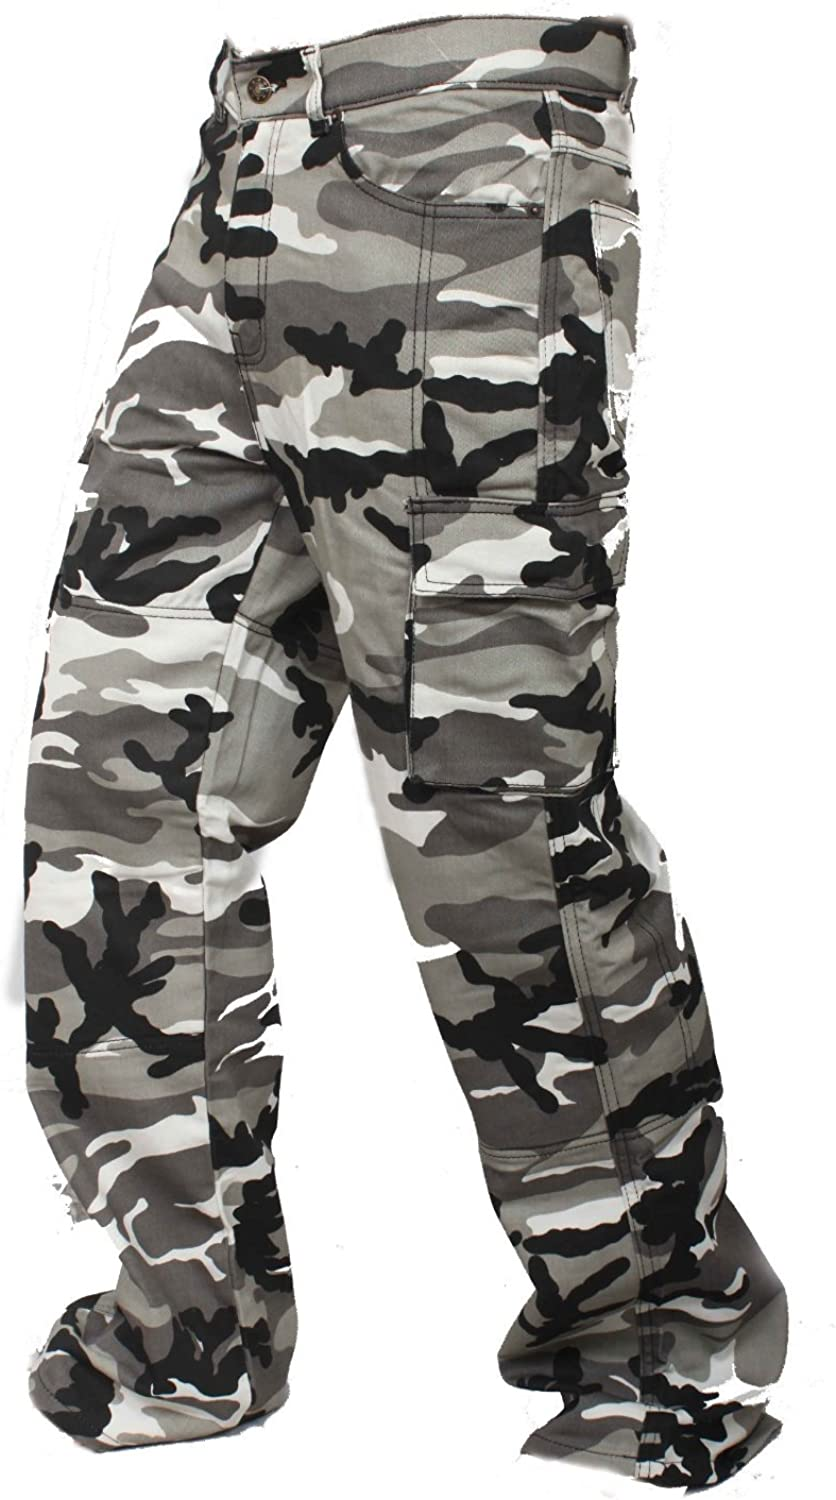 Newfacelook Mens Motorcycle Urban Jeans Pants Reinforced with Aramid Protection I111 Camo W38-L34